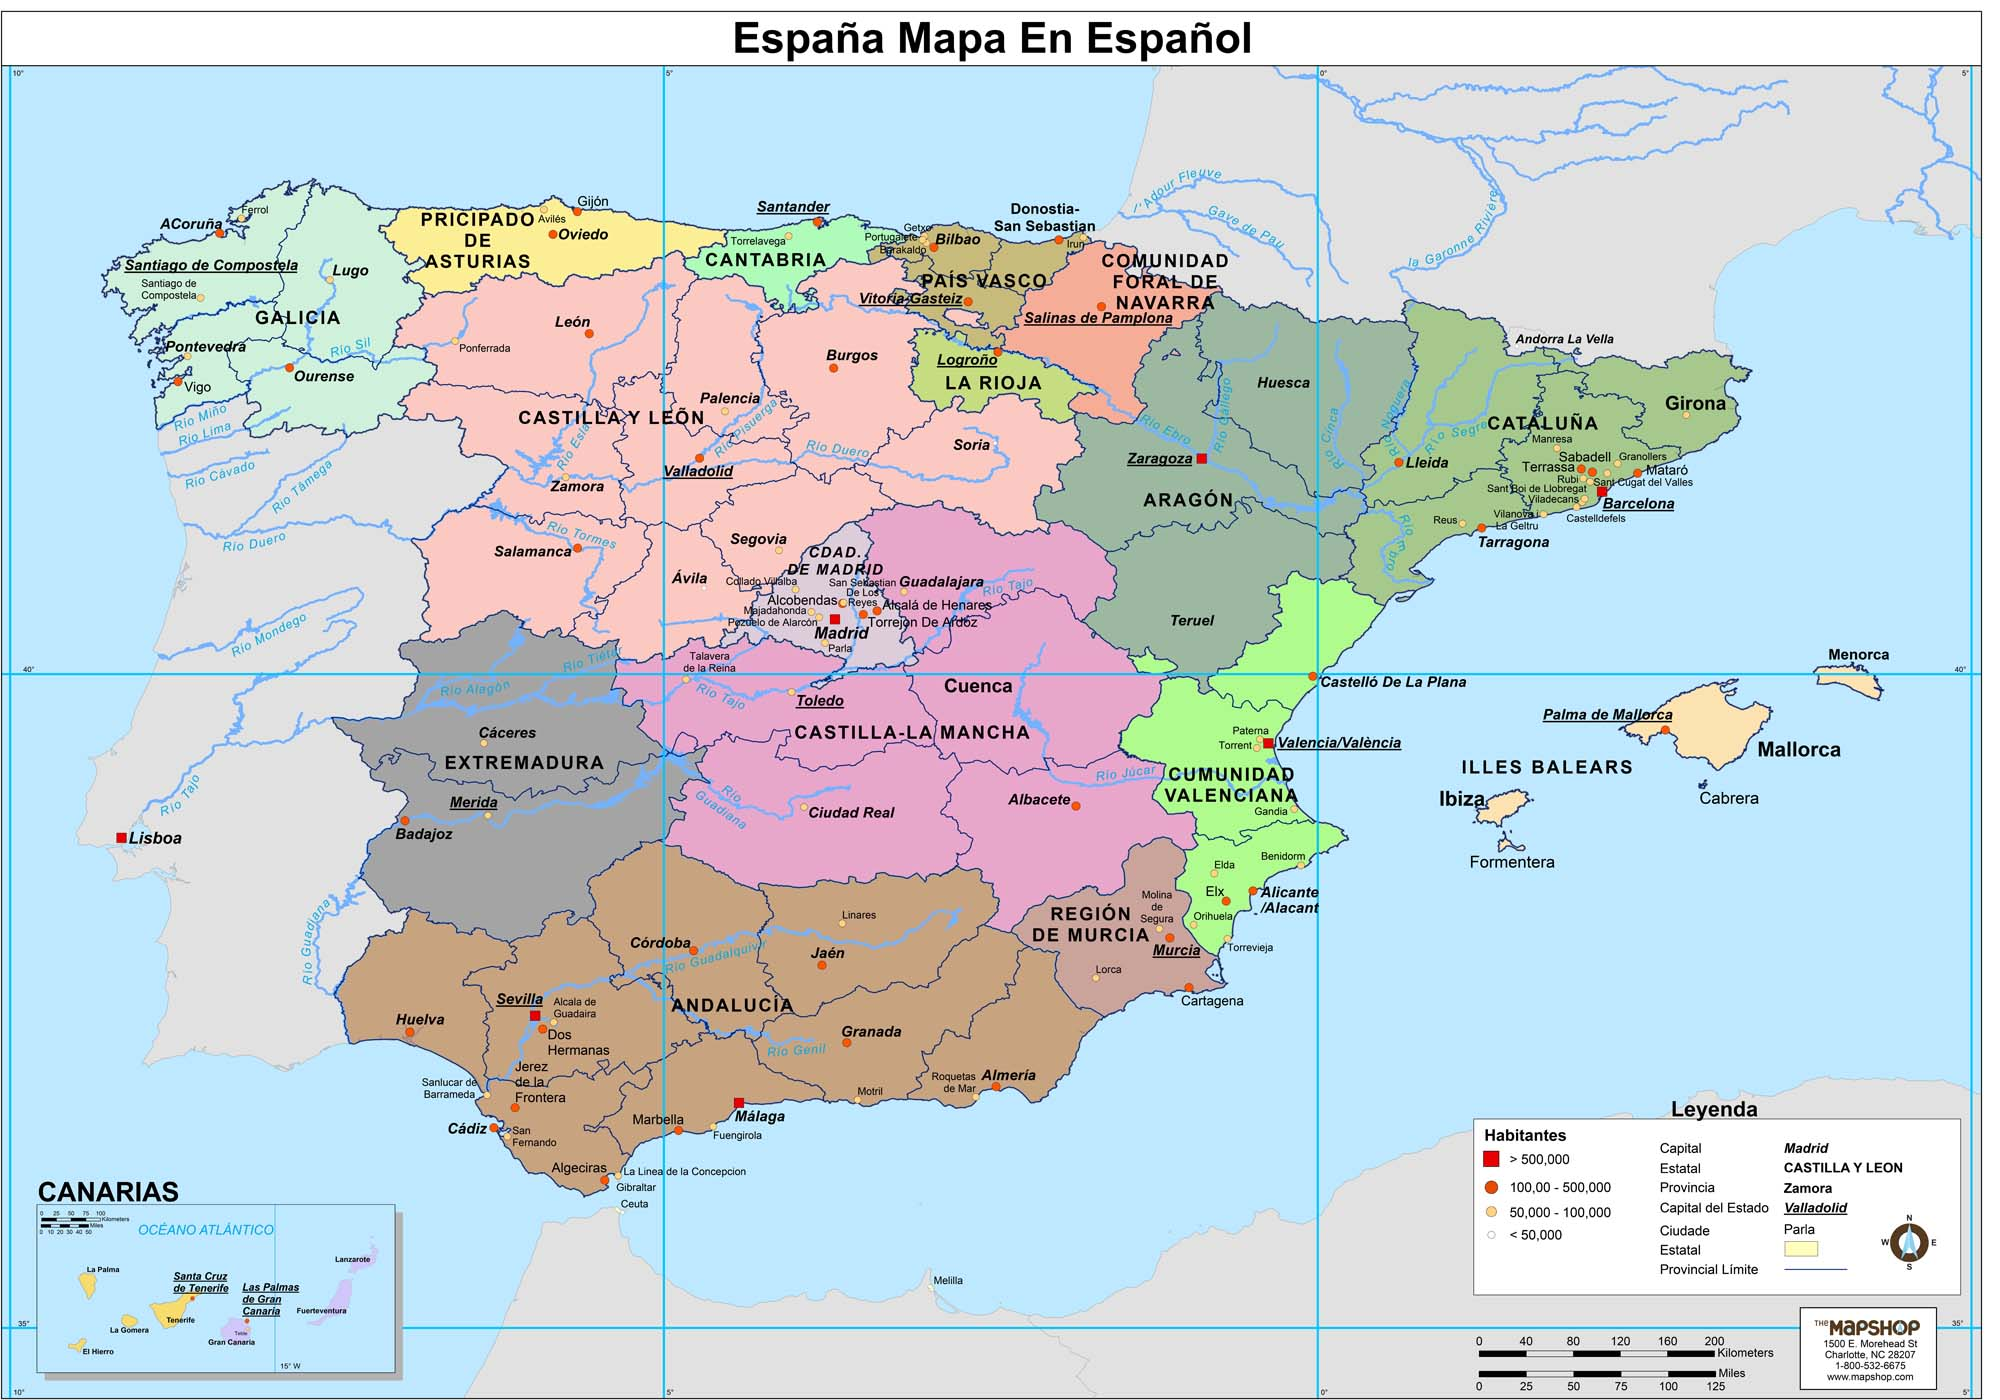 Spanish Map Of Spain.Spain Wall Map In Spanish